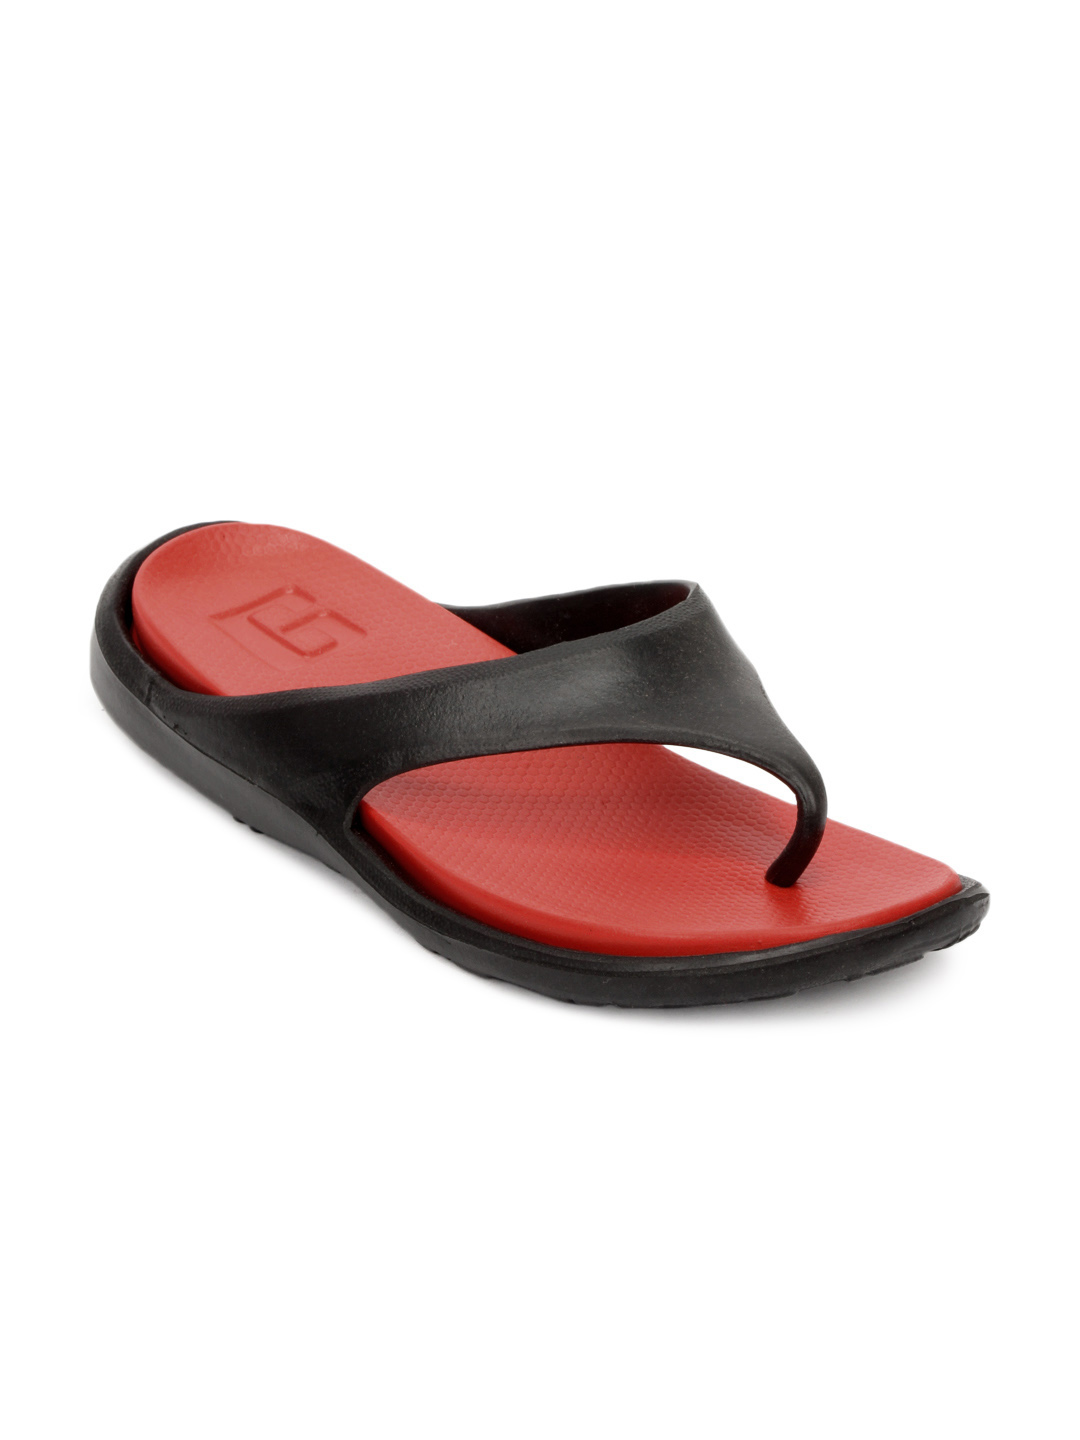 Gliders Unisex Red Spiner Flip Flops